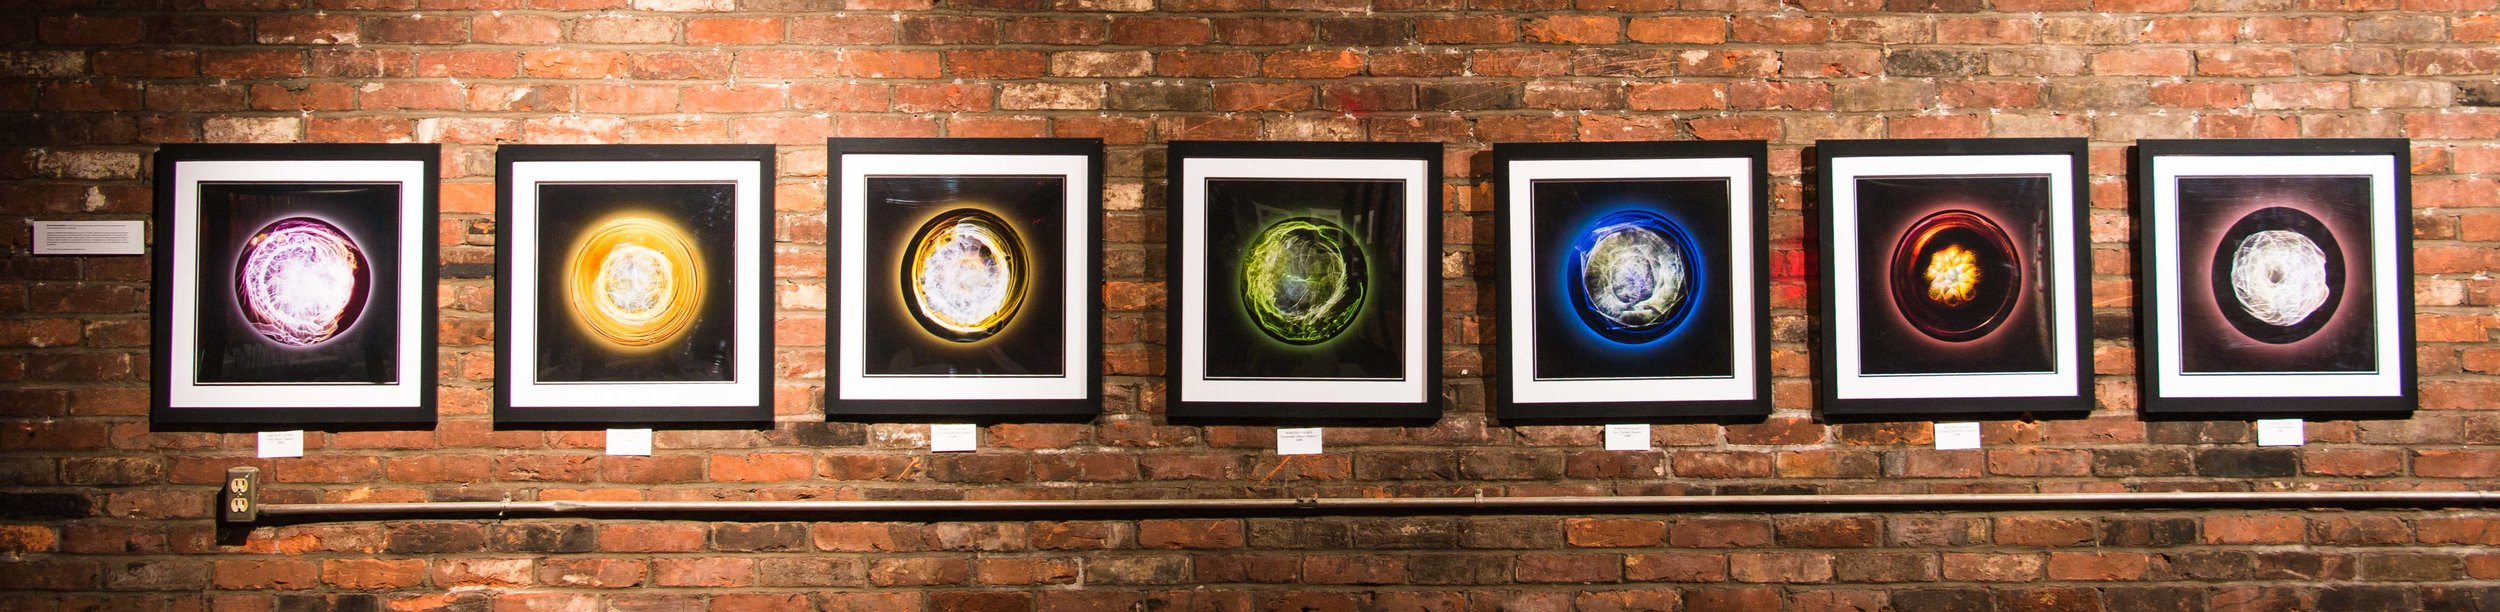 """""""Rosy Retrospection"""" by Whitney Olsen in collaboration with Keegan Kruse,Light refraction photos,7 - 22x22in frames, 2017, $500 each"""